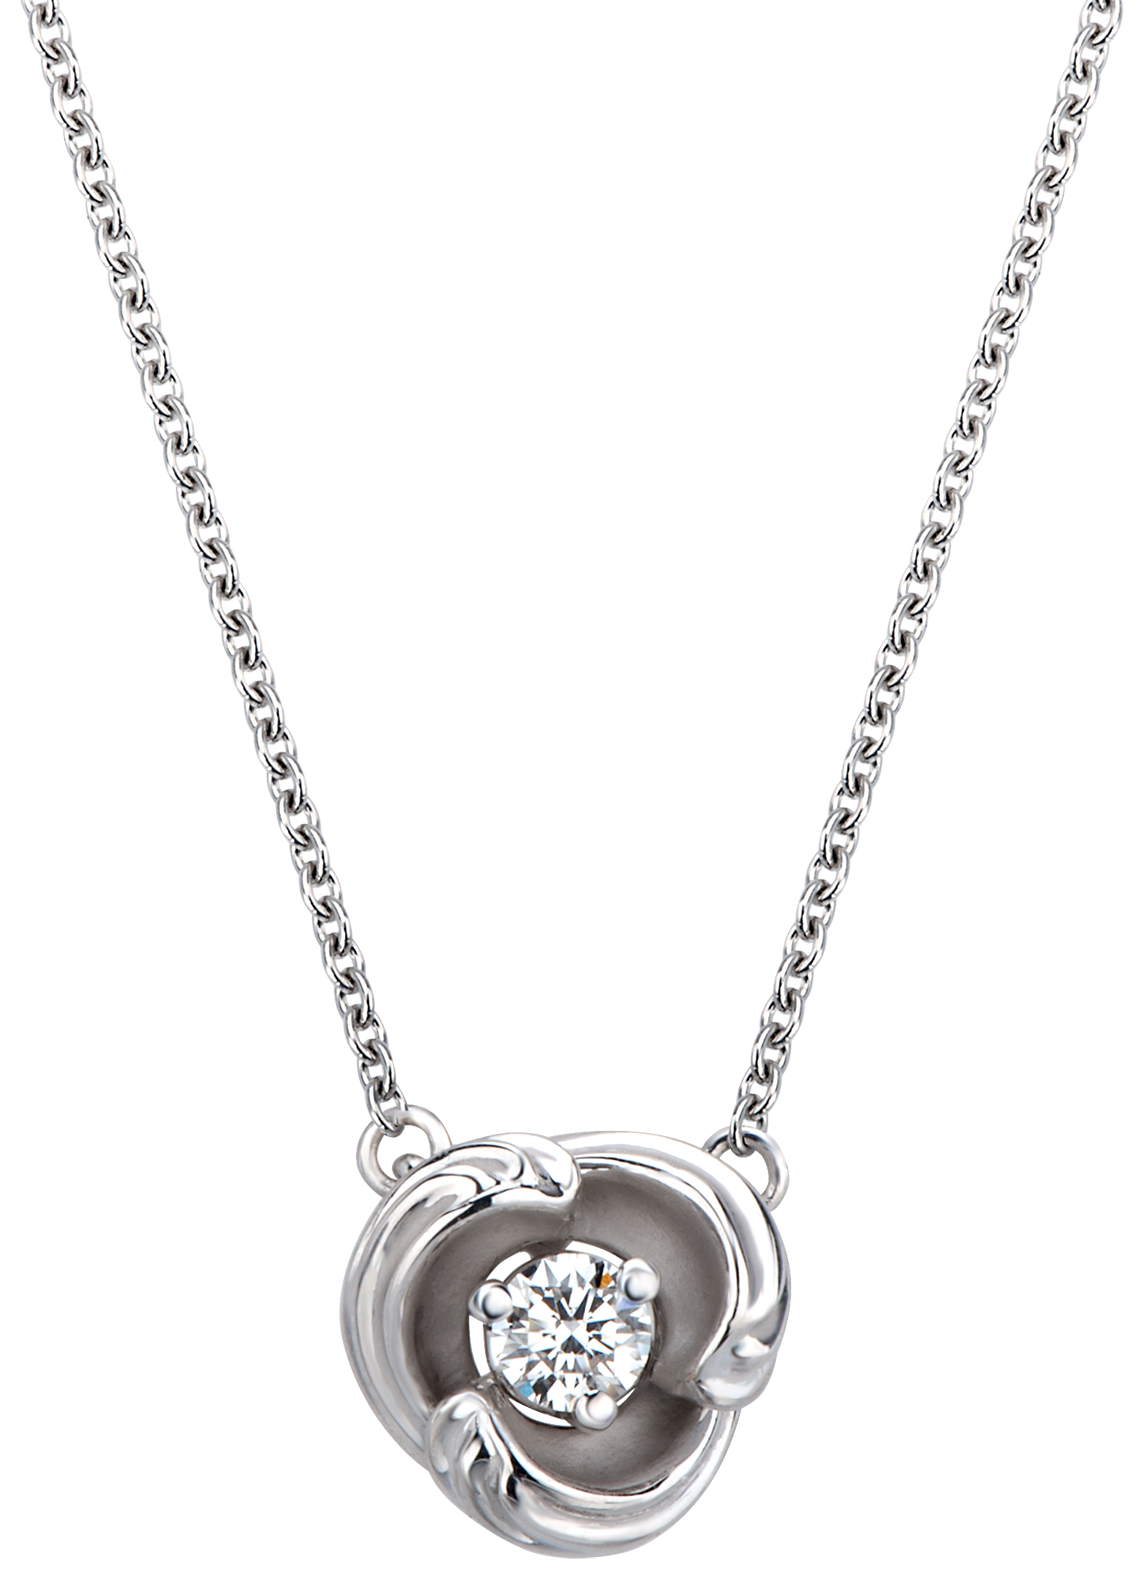 Carrera y Carrera diamond Origen necklace | JCK On Your Market